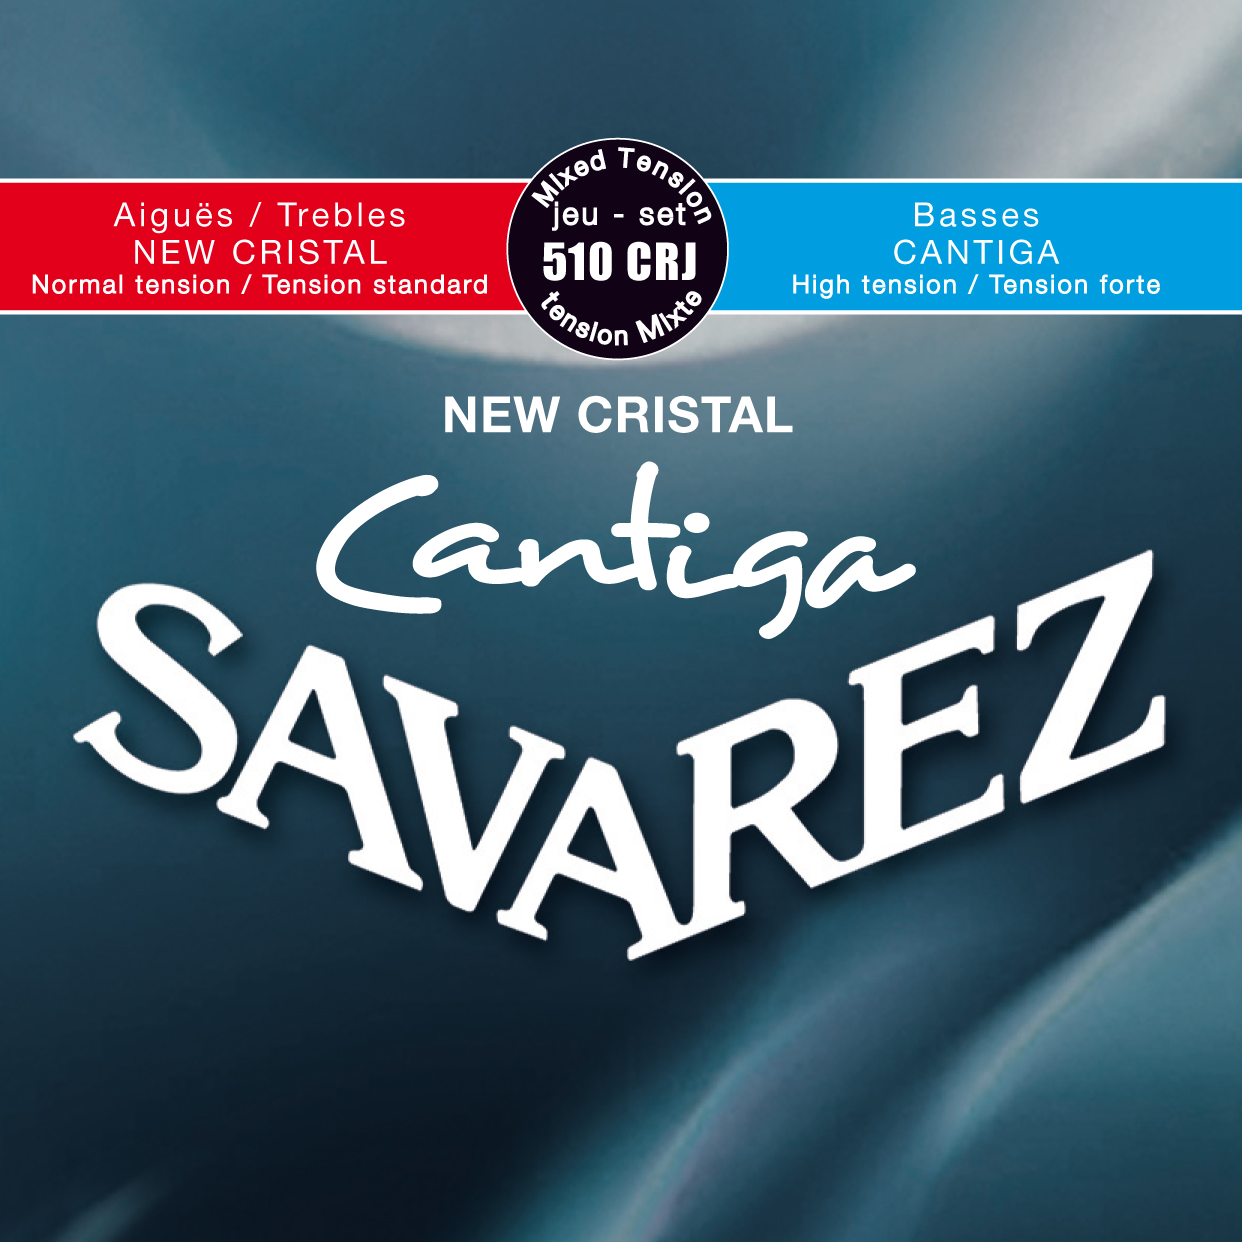 NEW CRISTAL CANTIGA TENSION MIXTE 510CRJ